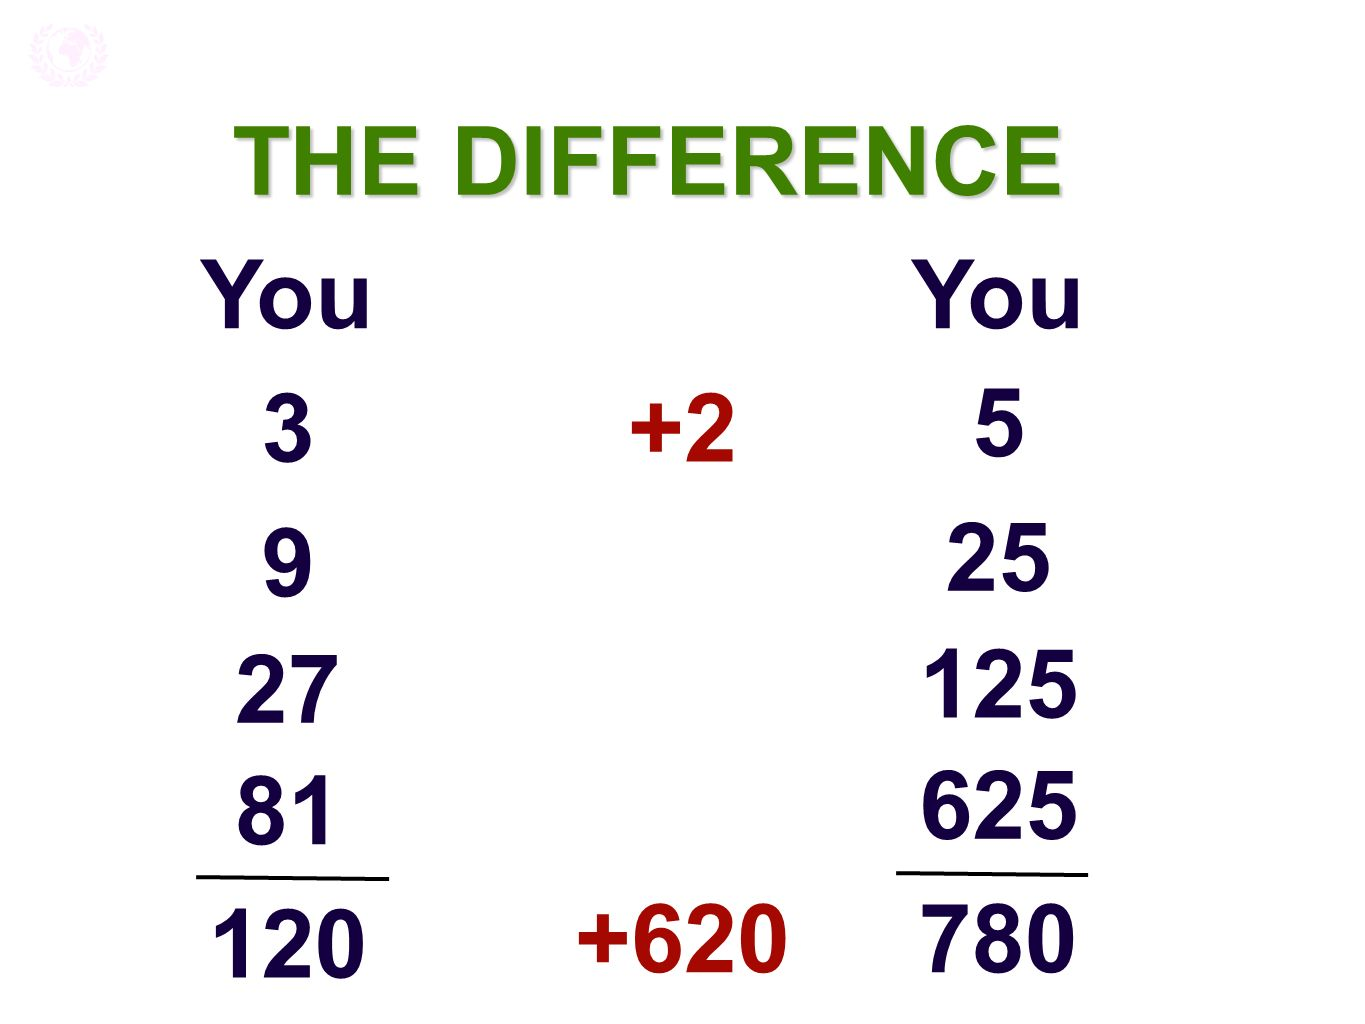 THE DIFFERENCE You 3 120 27 81 9 5 780 125 625 25 +620 +2